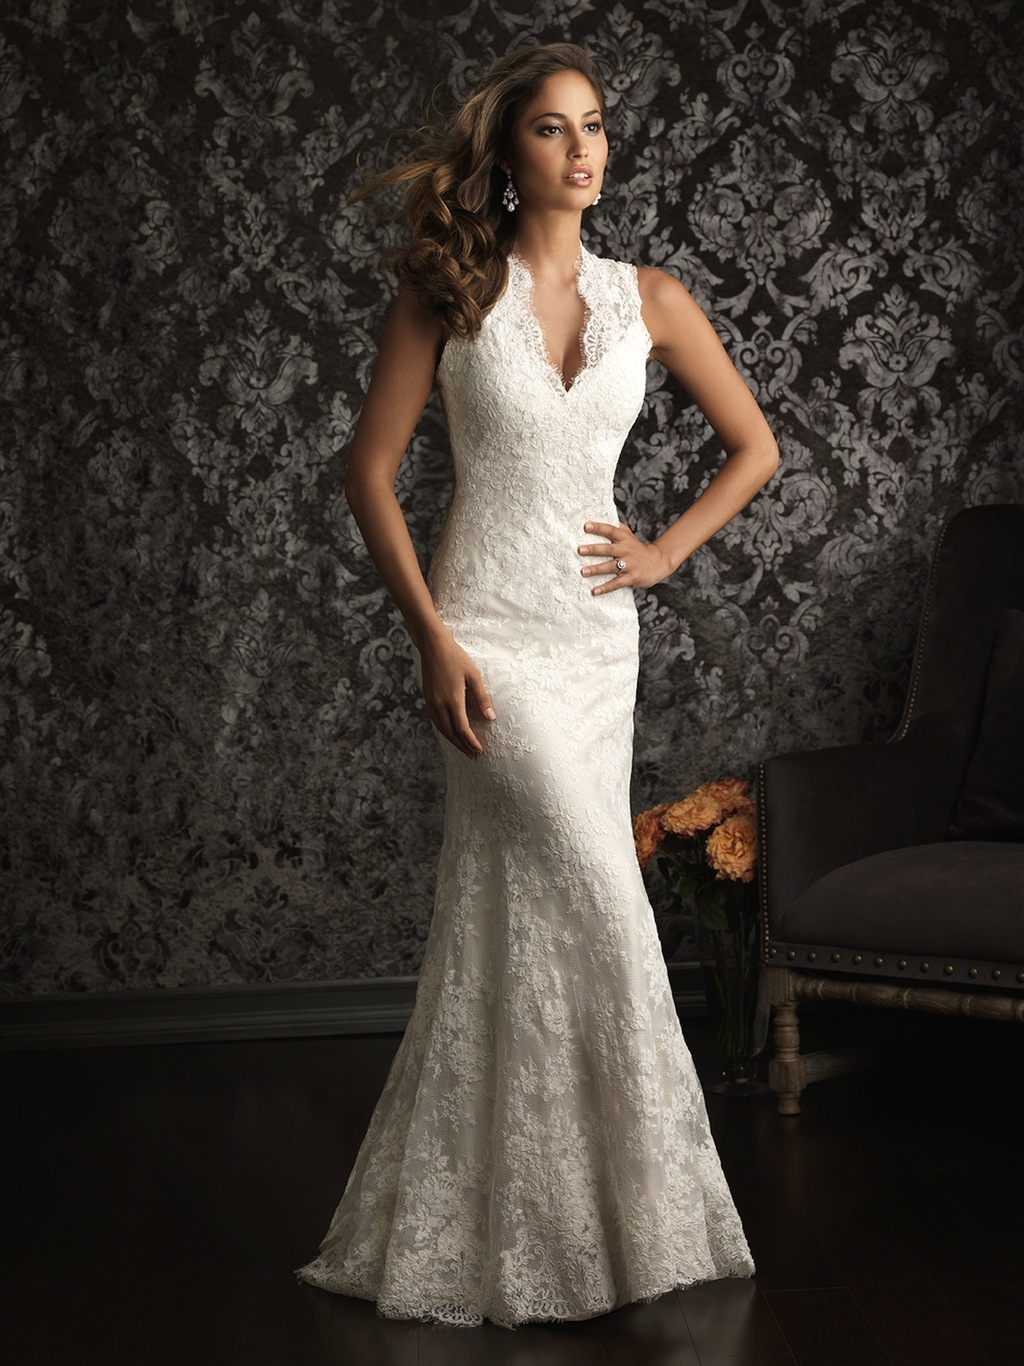 Allure-bridals-wedding-dress-bridal-gown-allure-collection-2013-9019f-2.full